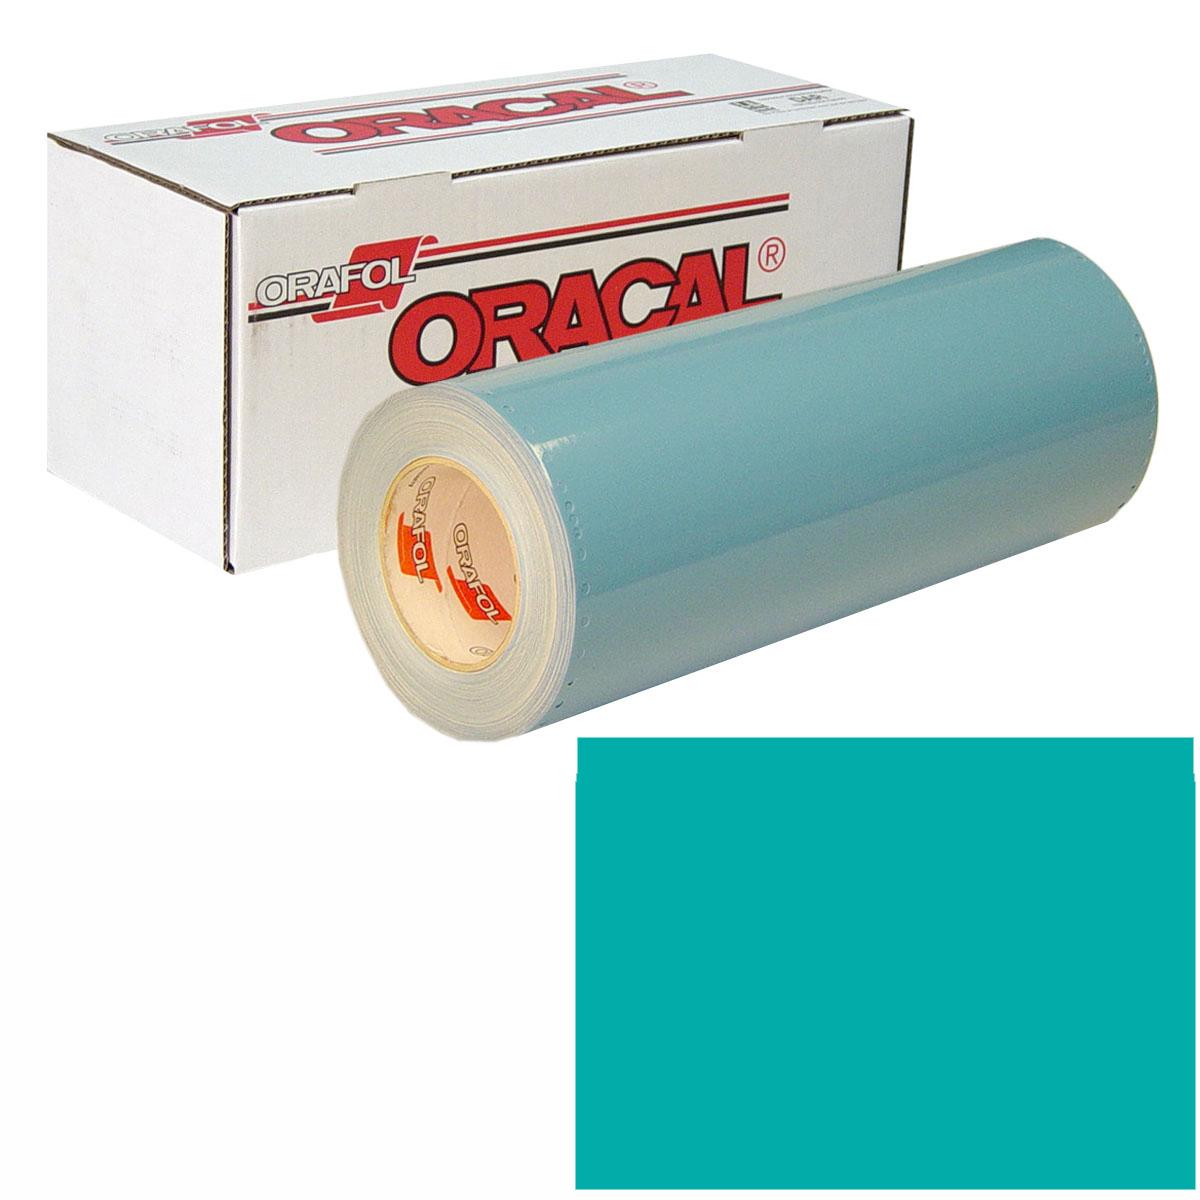 ORACAL 751 15in X 50yd 054 Turquoise